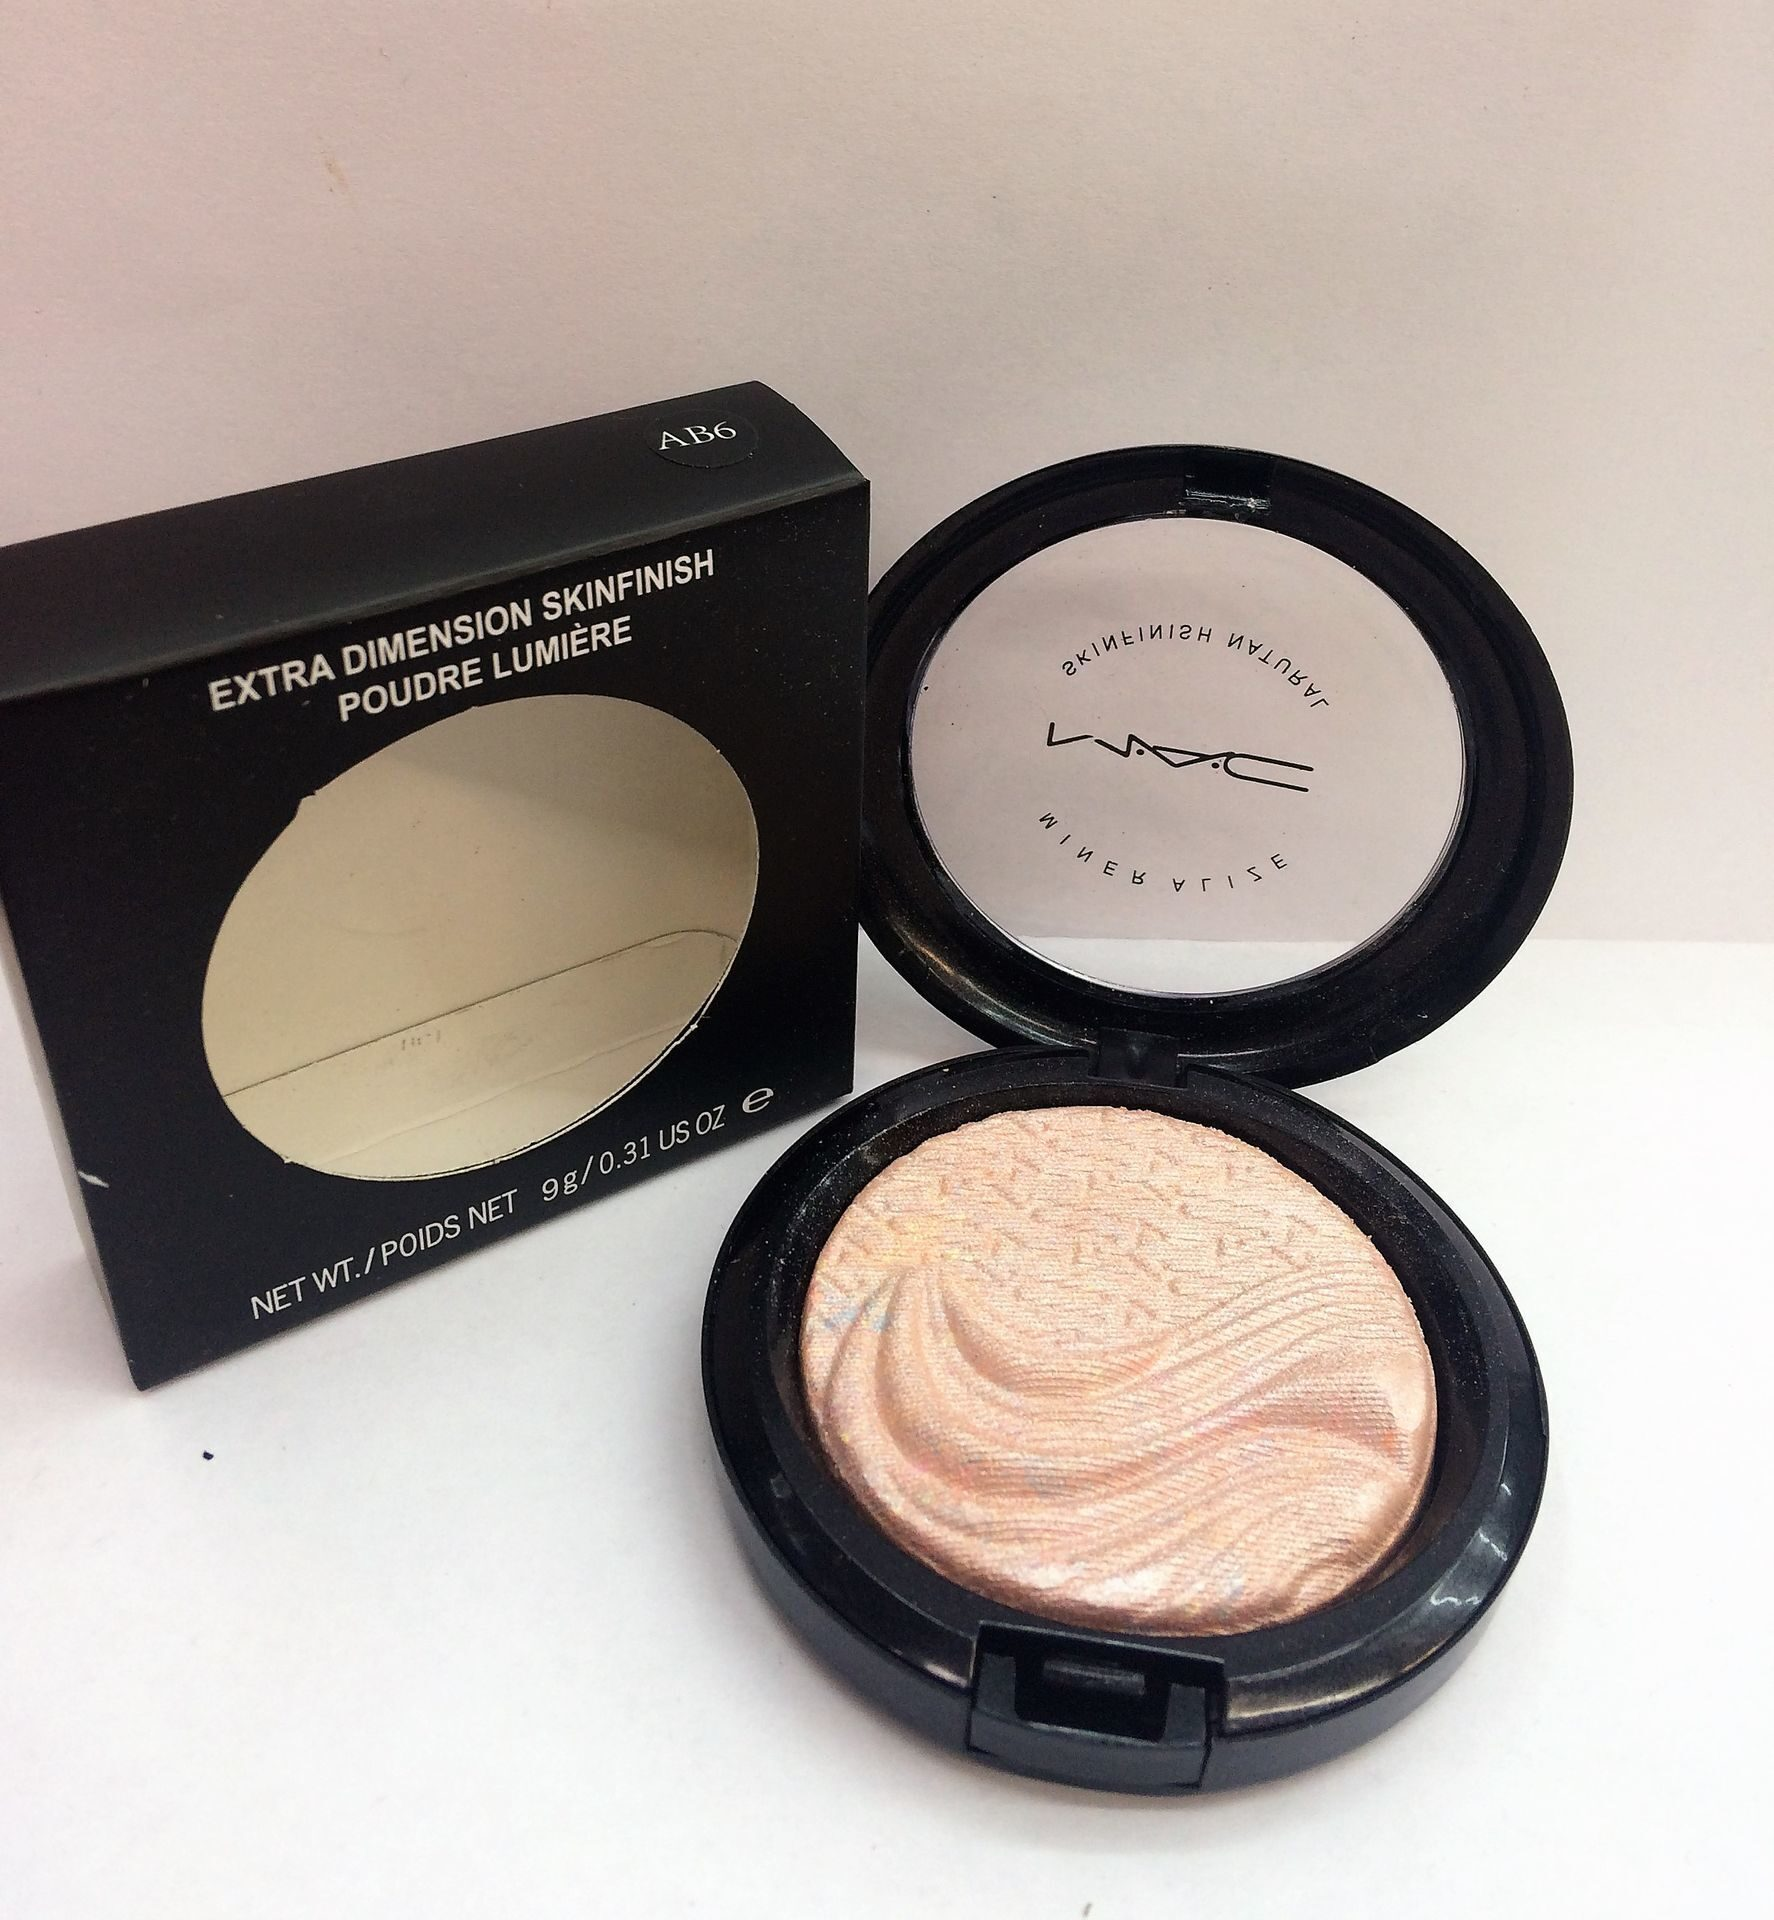 MAC AB6 extra dimension skinfinish poudre lumiere